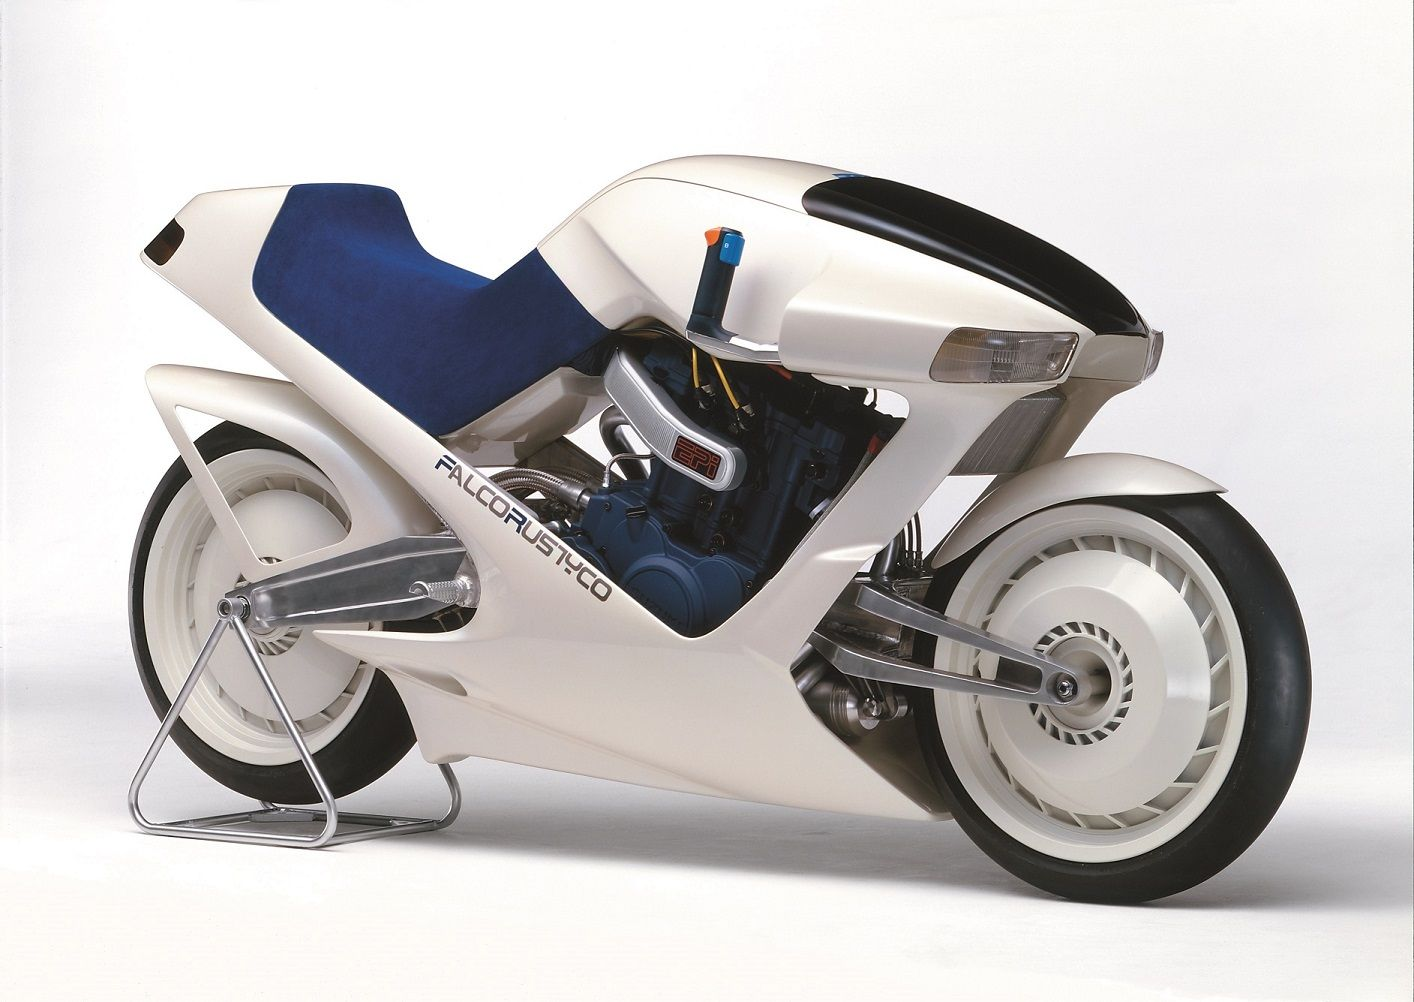 Top 10 Brilliant Motorcycle Innovations That Never Caught On 2